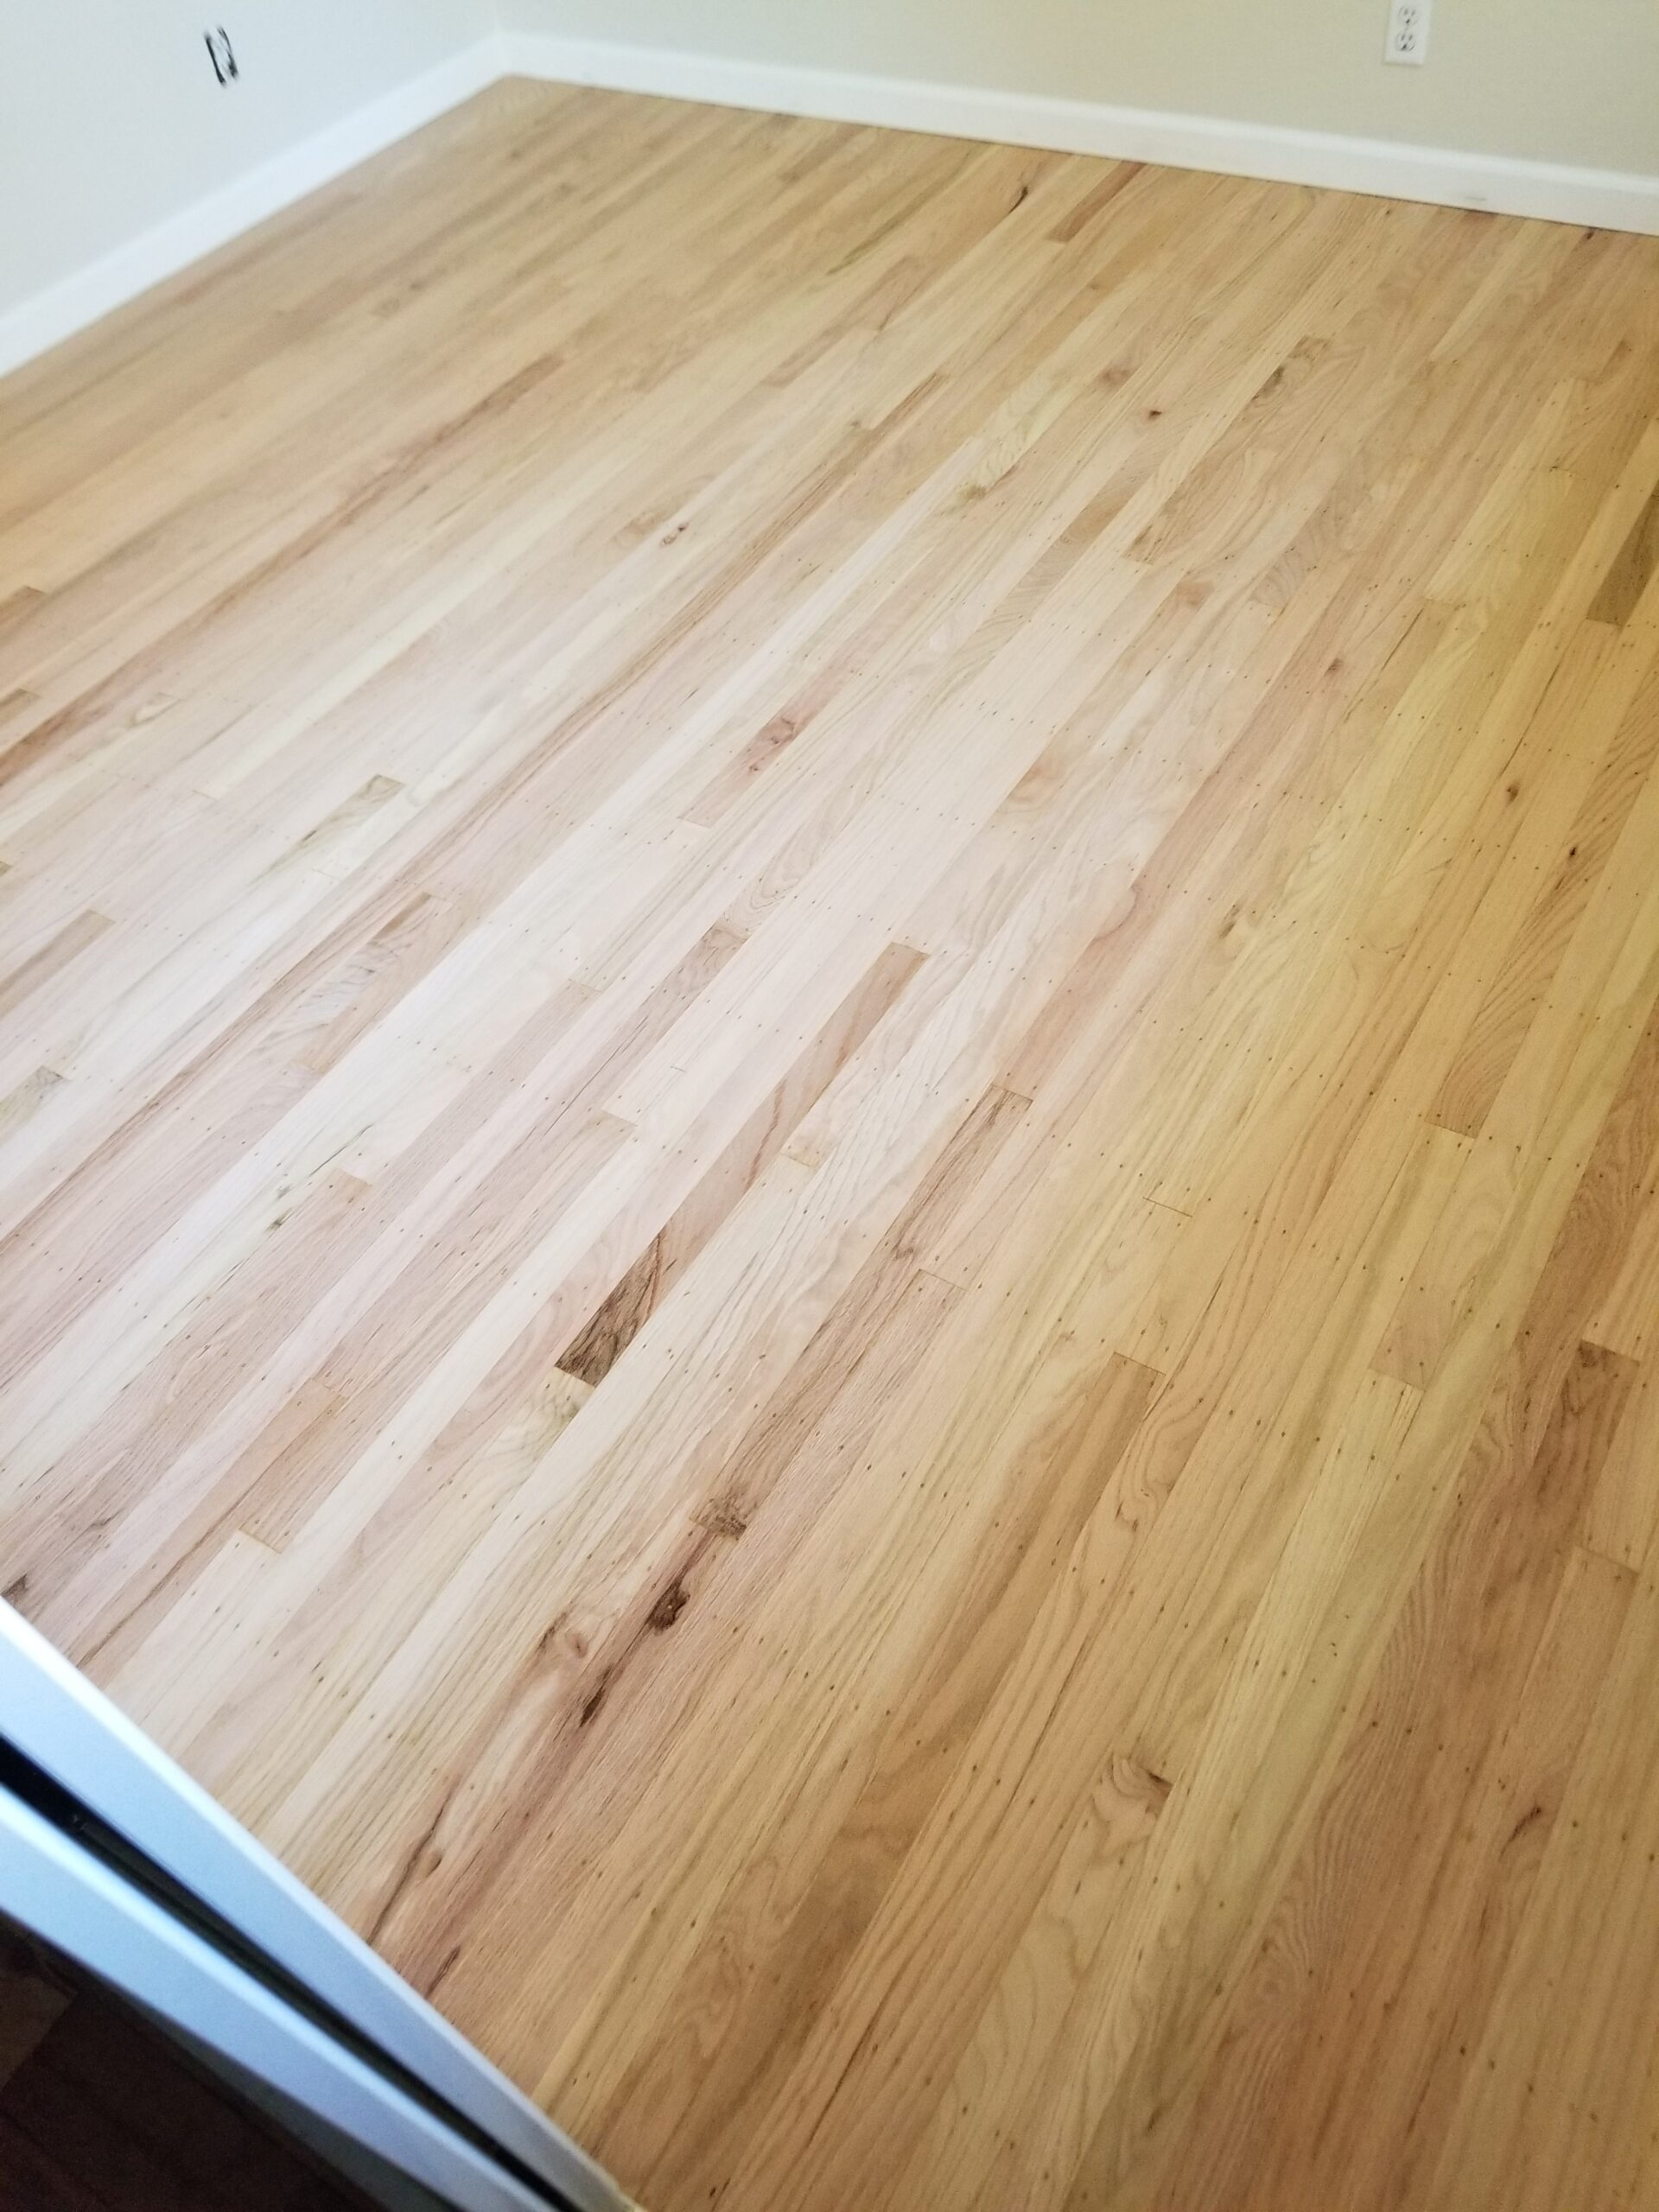 Sunnyvale residential: Three bedroom, hallway refinish red oak 2 inch x 5/16 inch with water-base clear-coat semi-gloss finish.